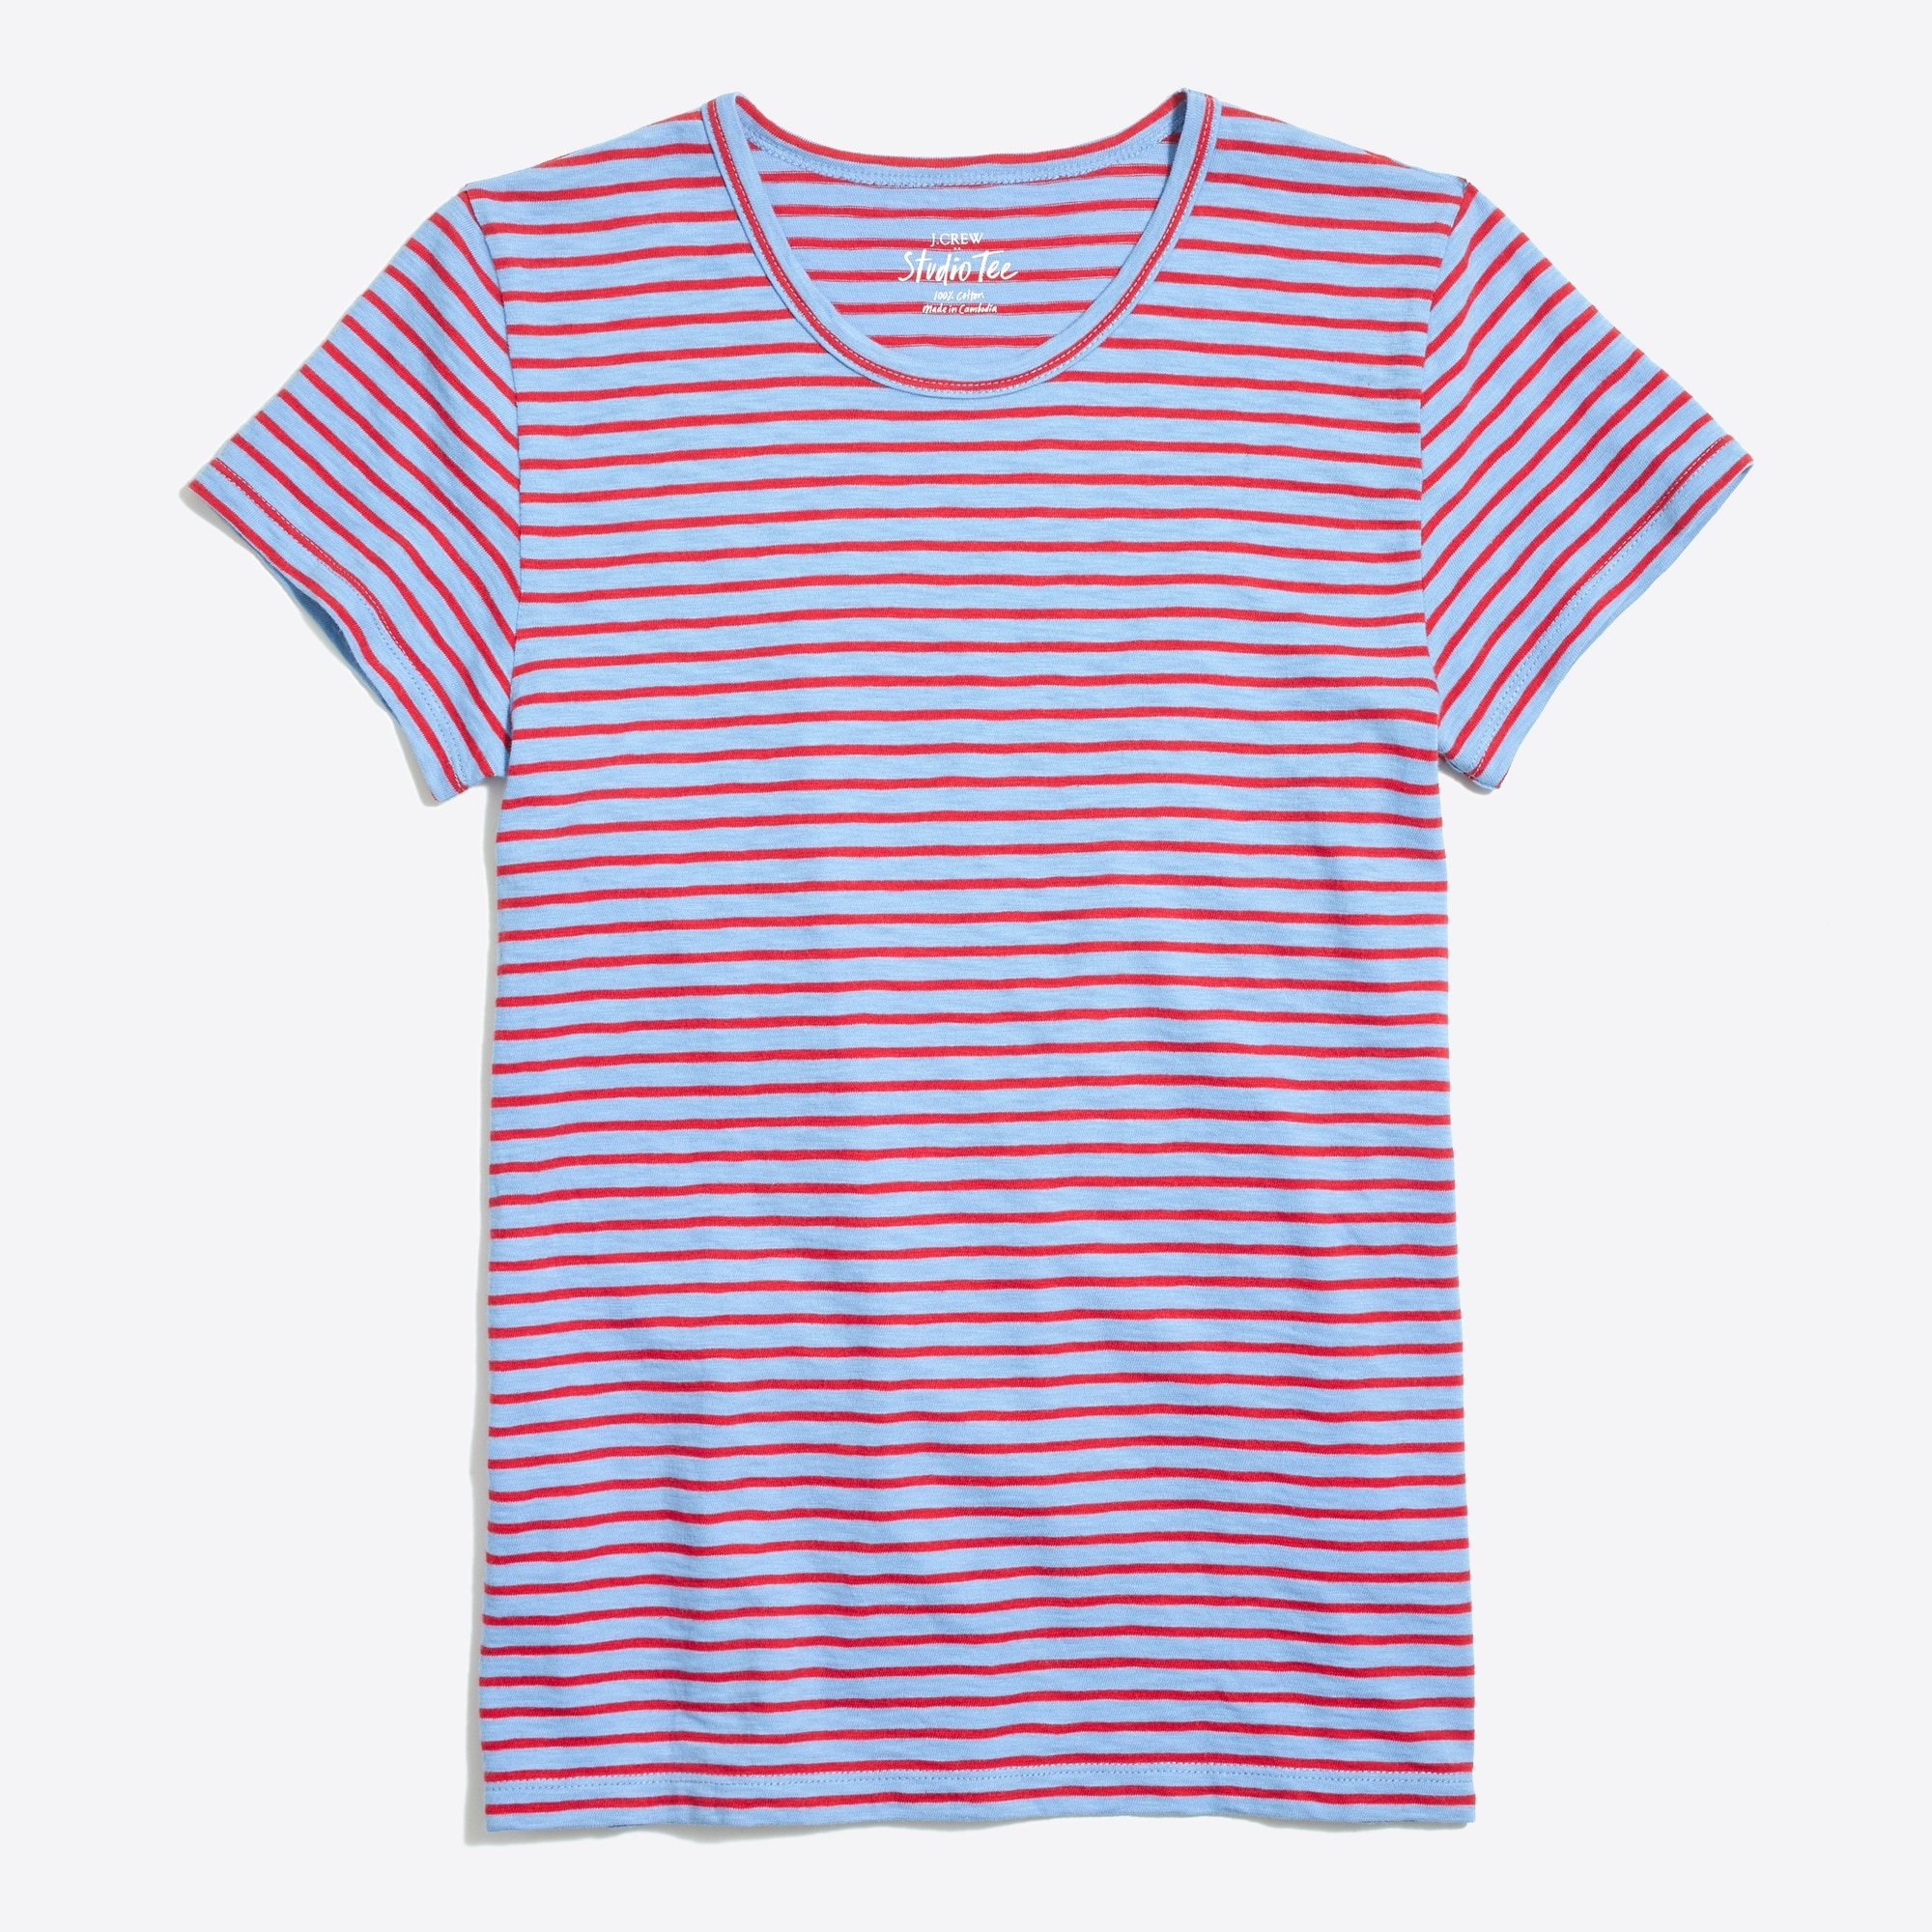 Image 1 for Striped studio T-shirt